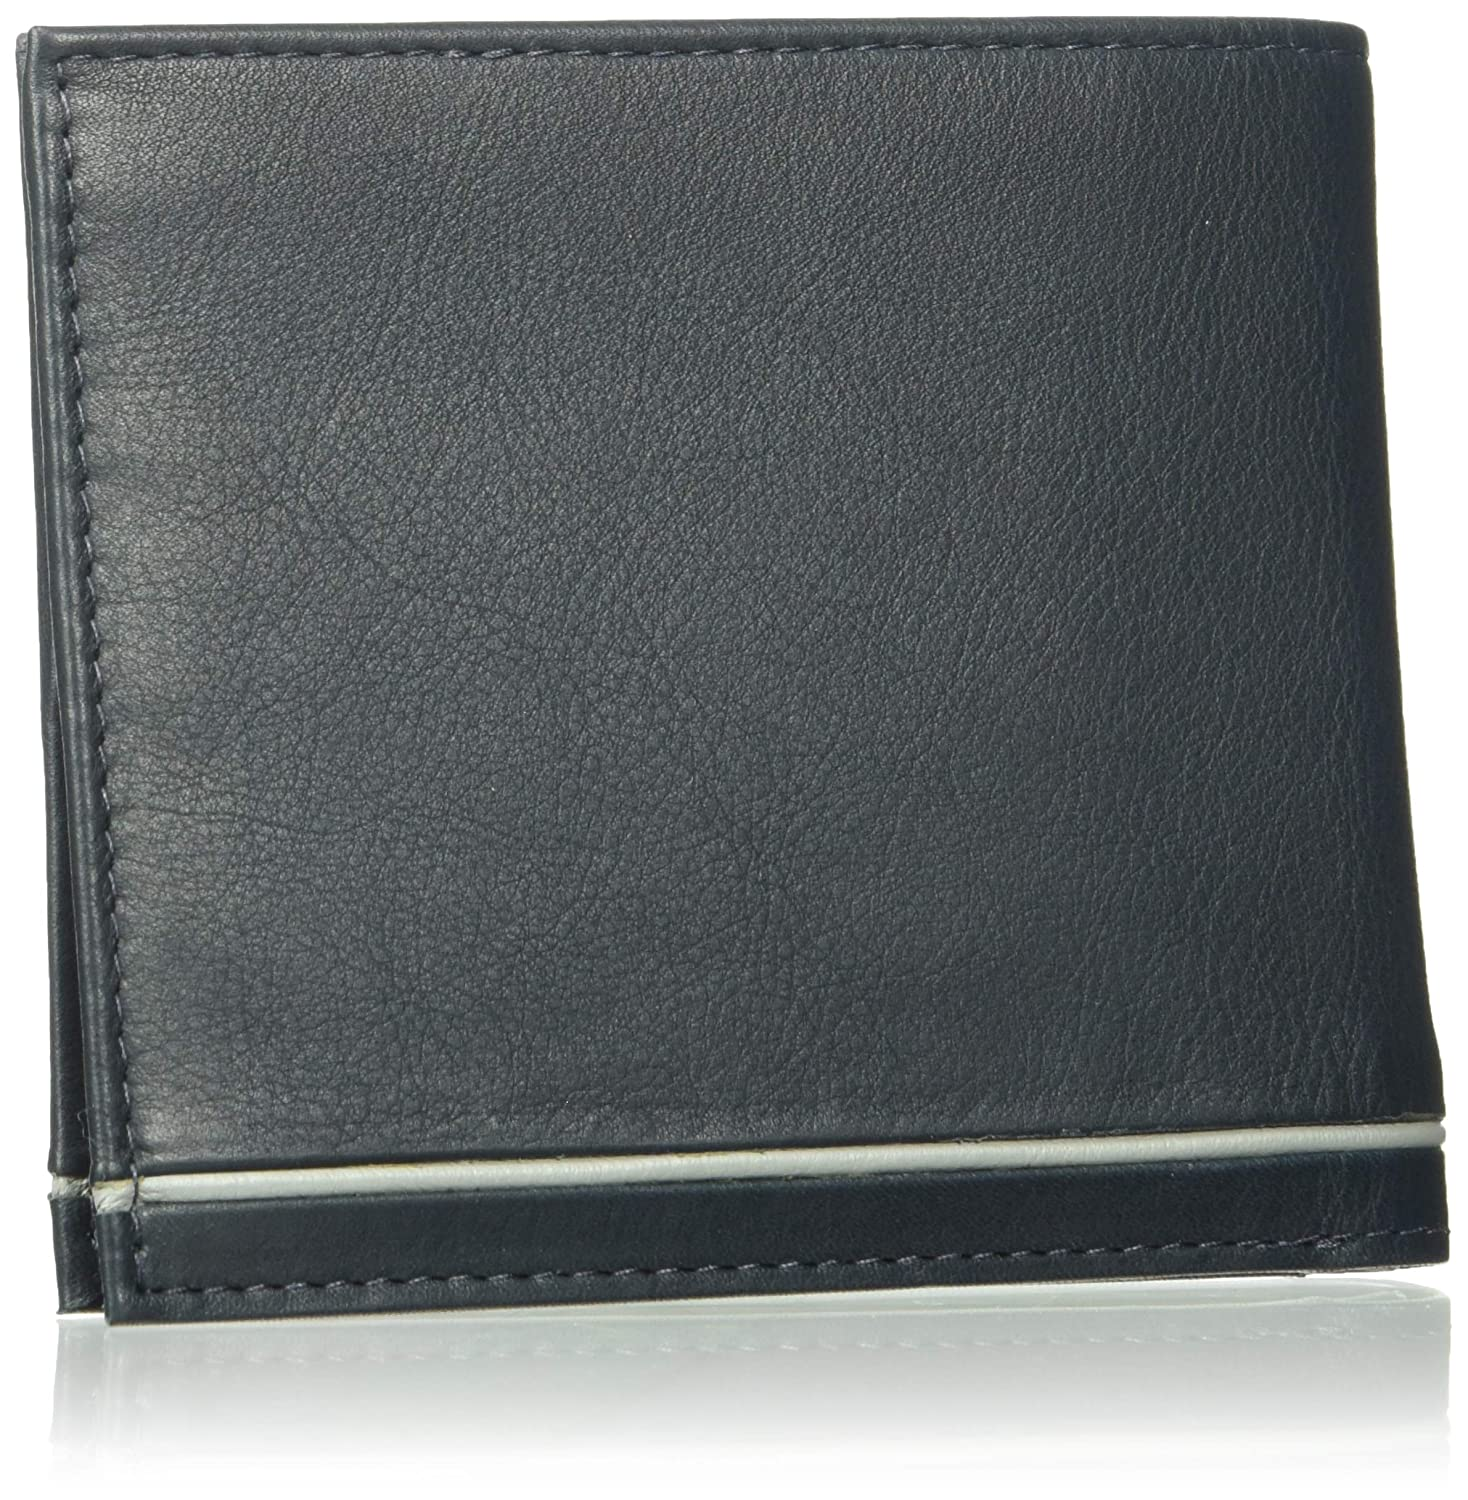 485499094e2 Ted Baker Men's Jeeze Wallet, Charcoal, One Size: Amazon.co.uk: Clothing